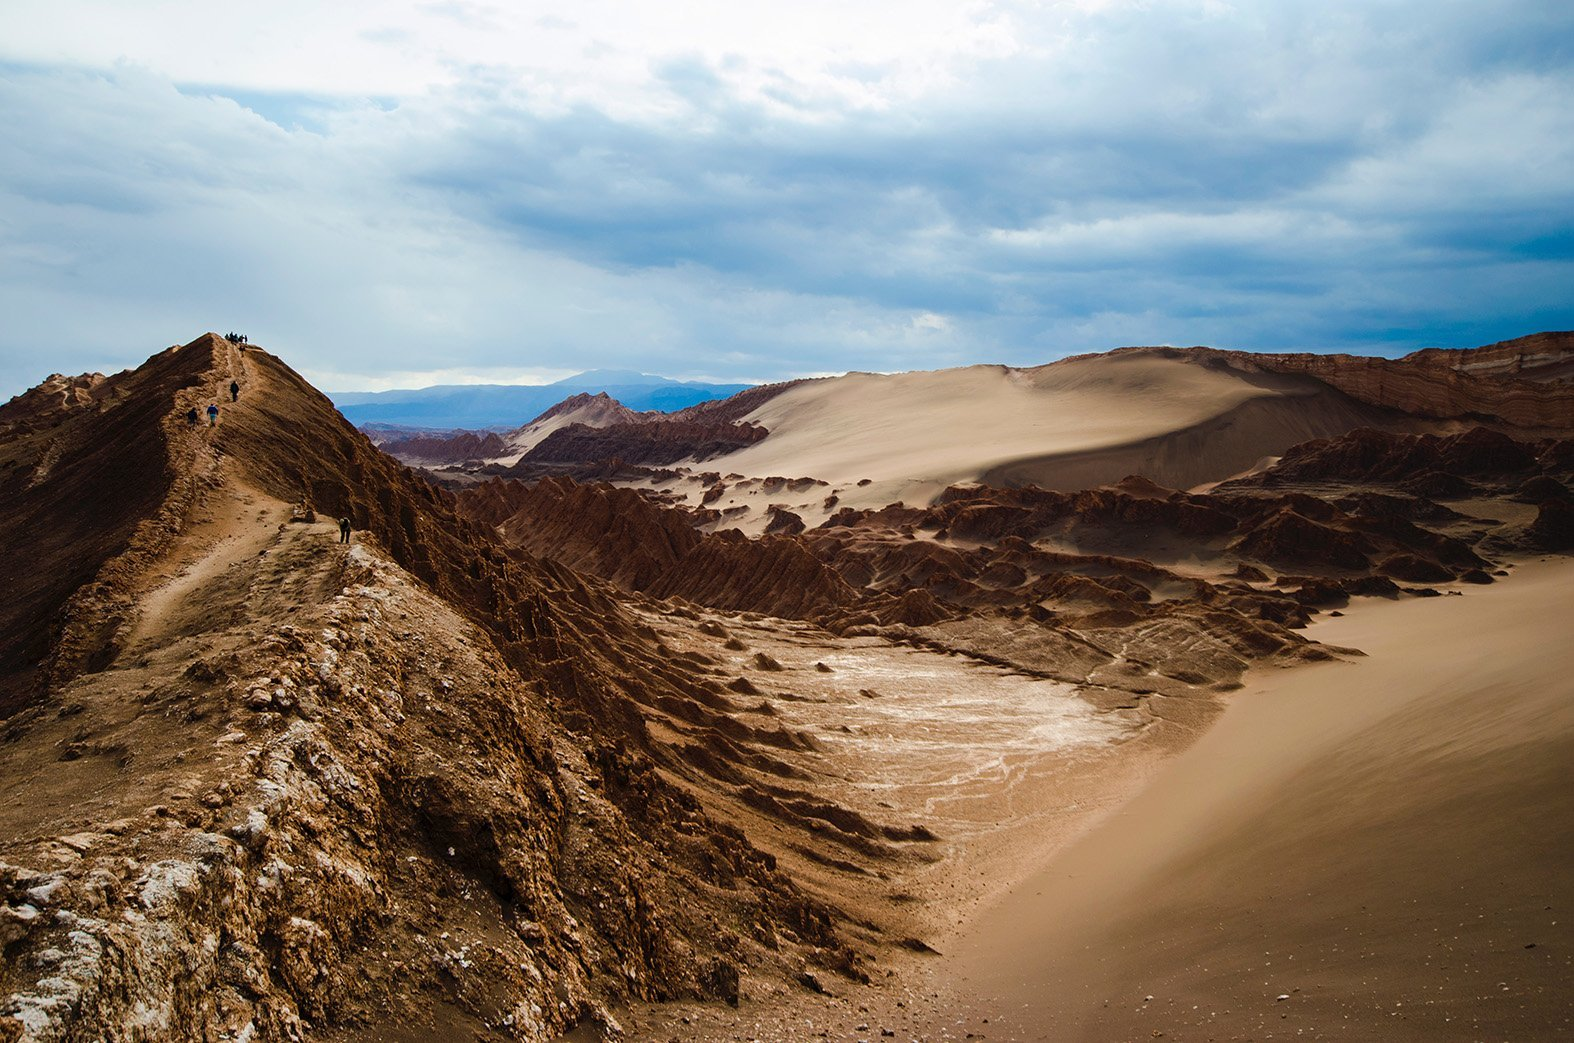 Atacama desert is all about the unearthly landscapes